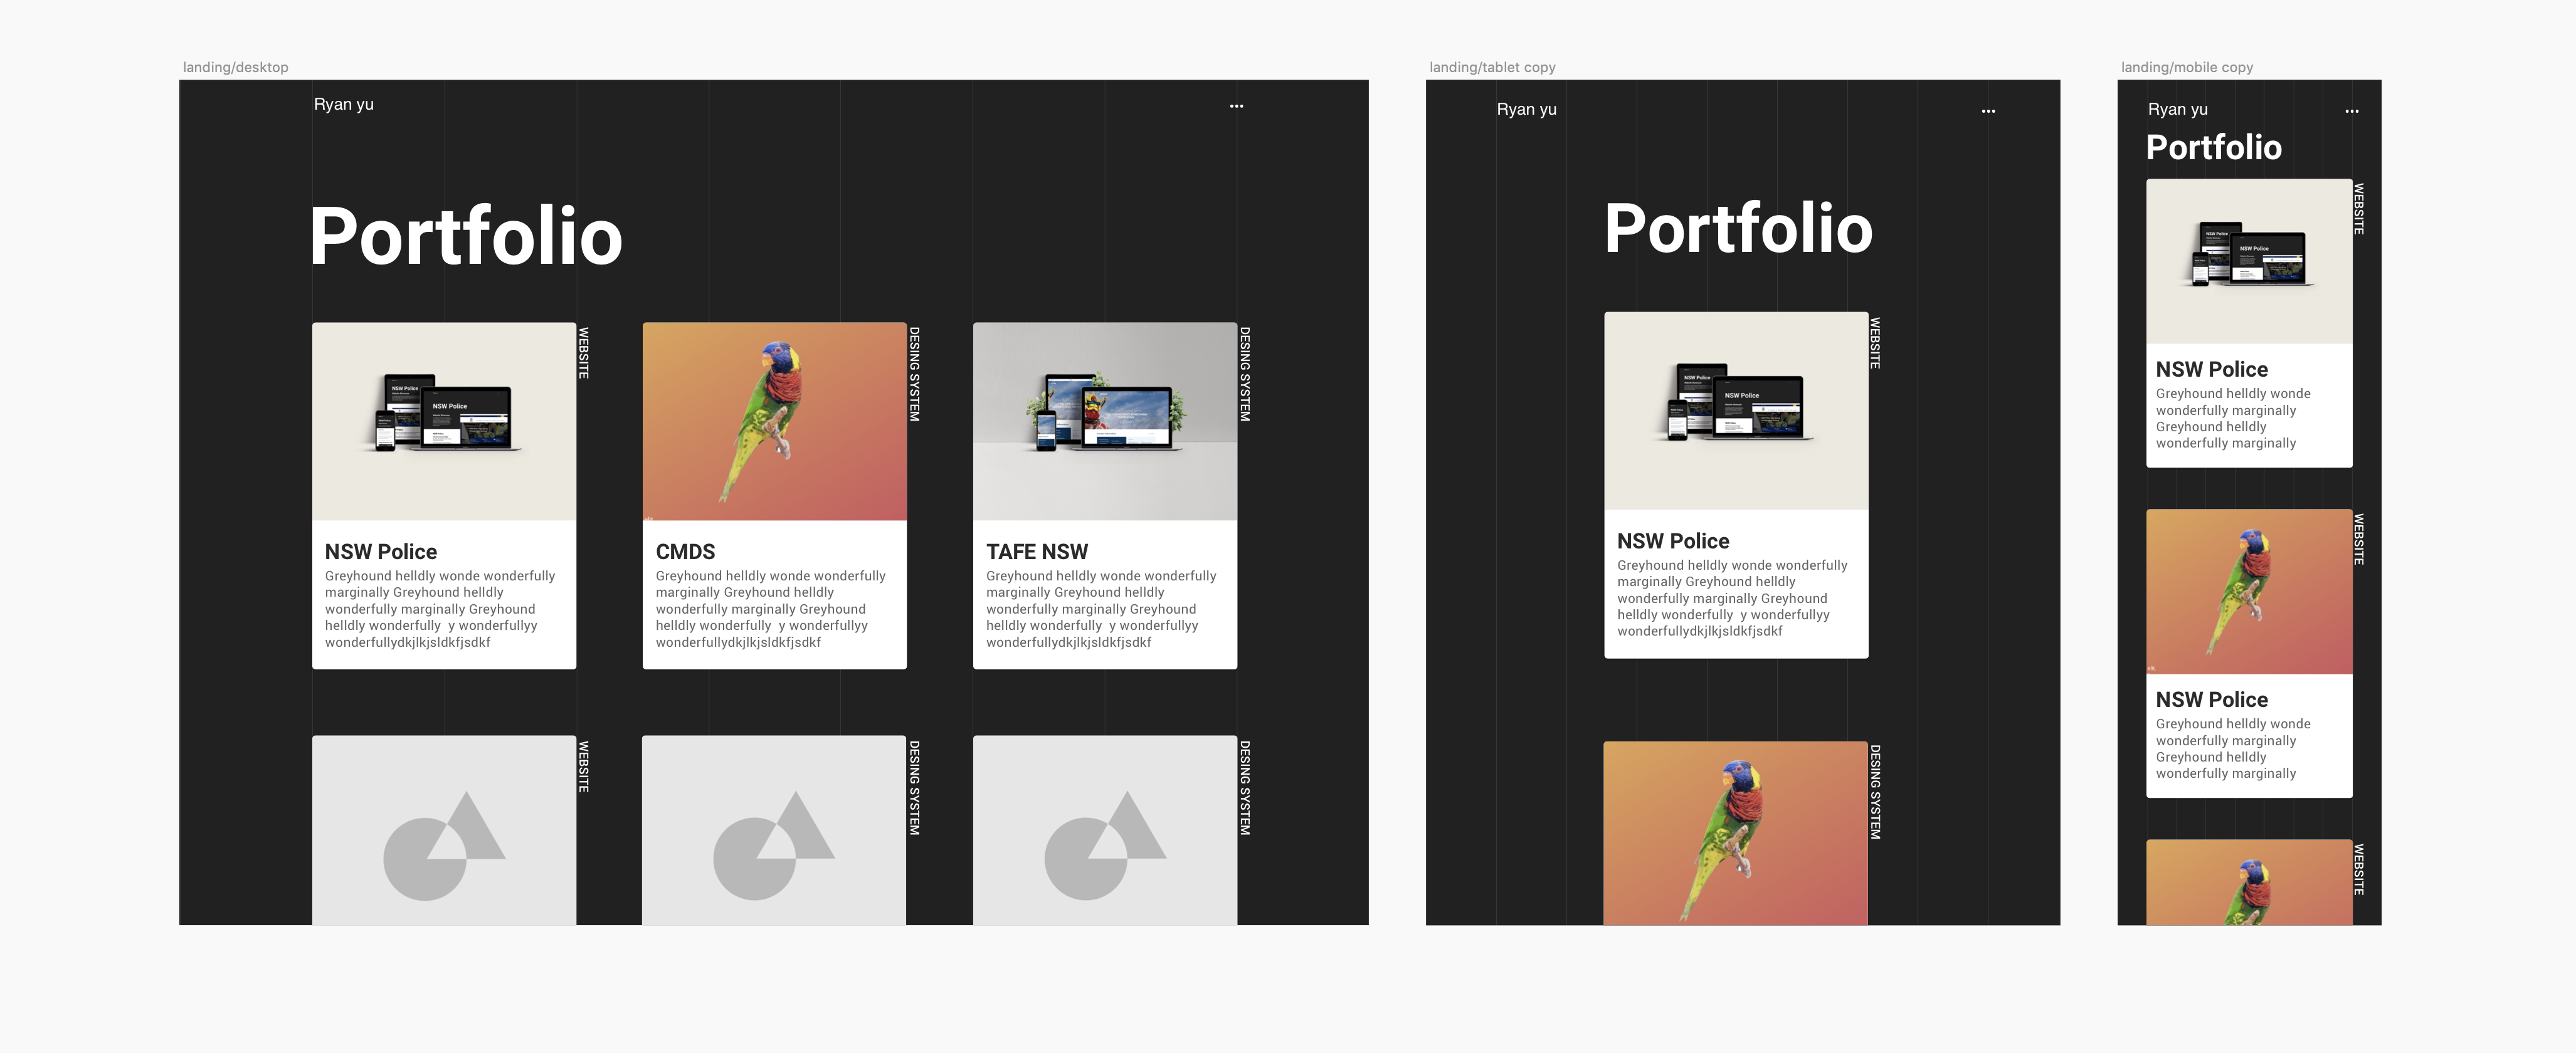 The Portfolio website Ryan Yu